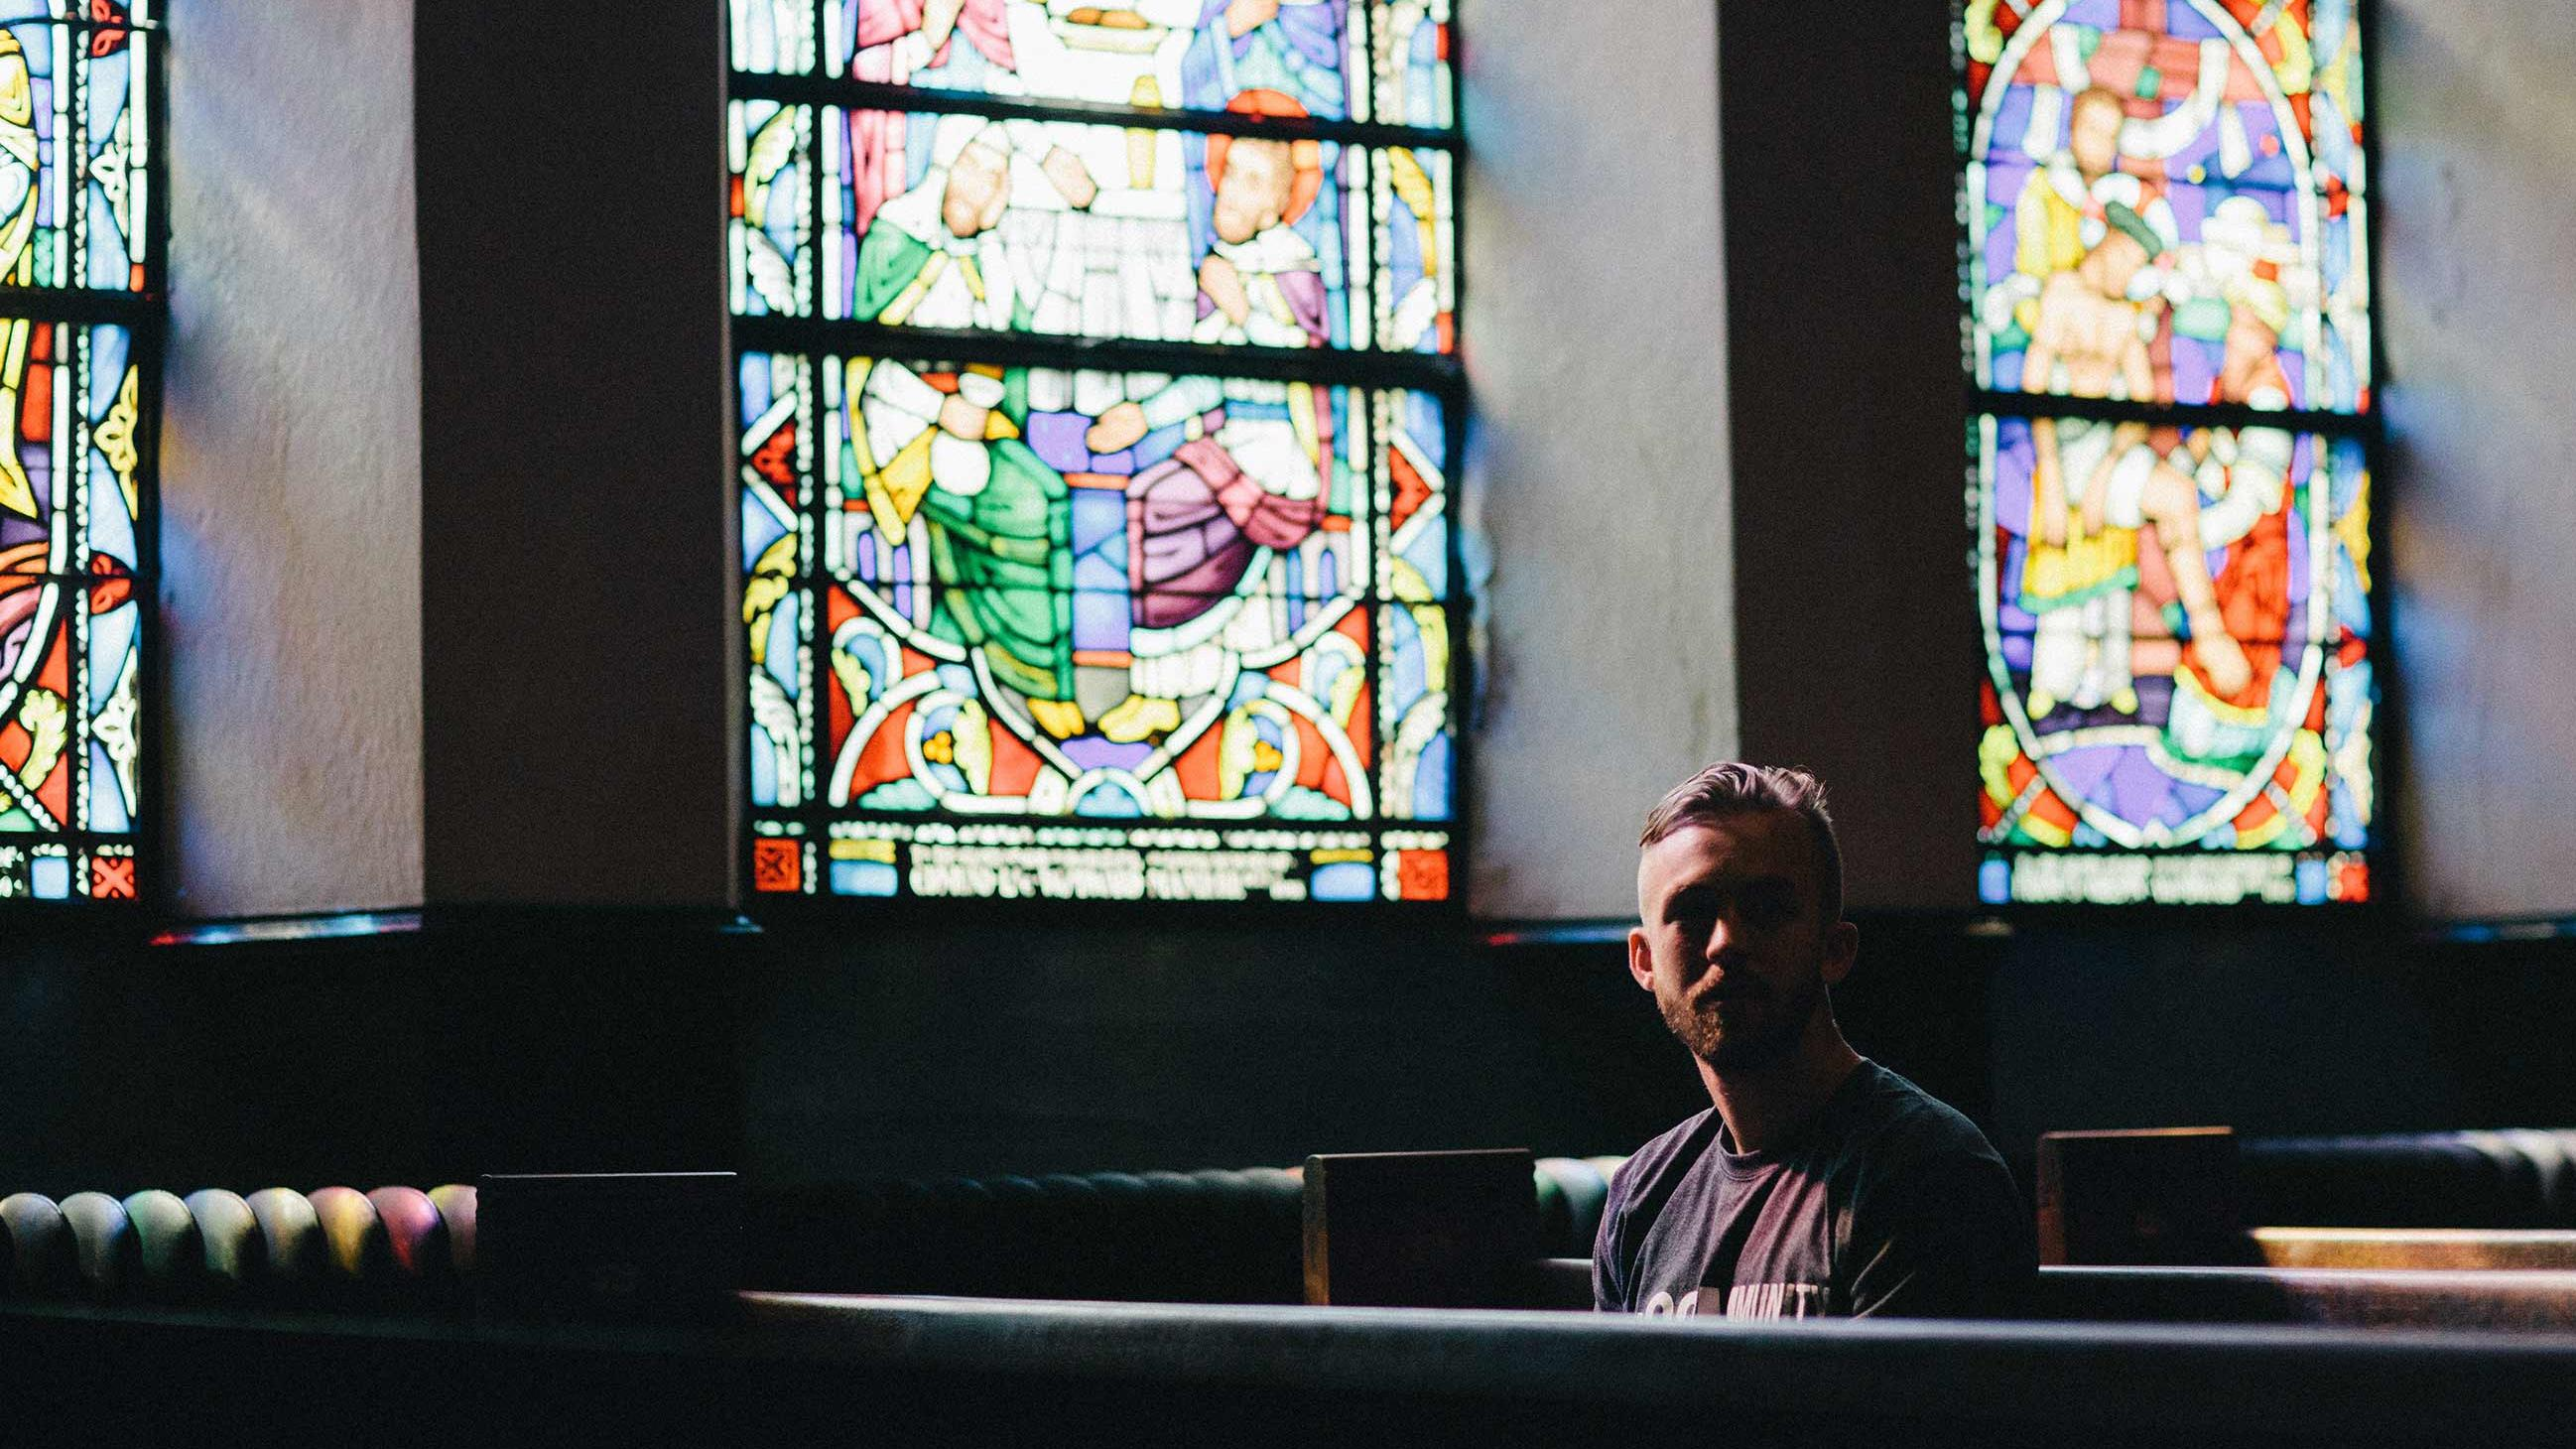 Man sitting in pews beneath large stained glass windows